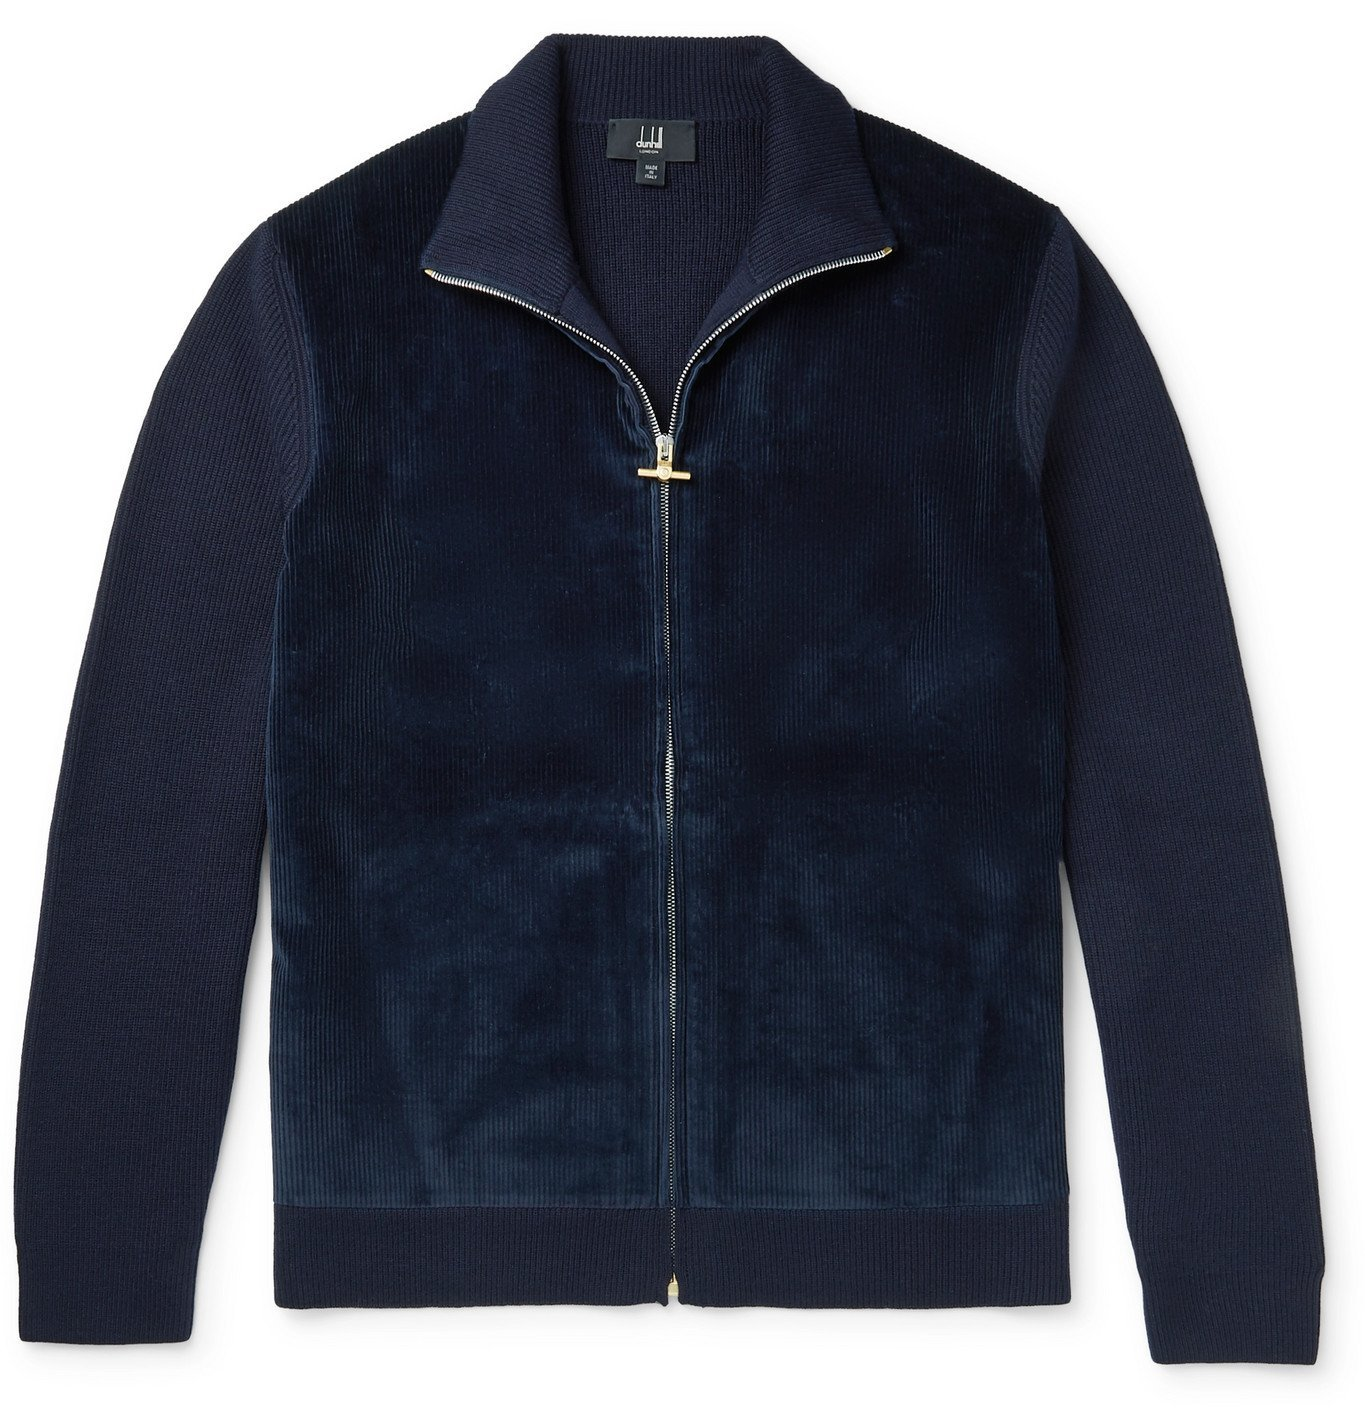 Dunhill - Panelled Cotton-Blend Corduroy and Merino Wool Zip-Up Cardigan - Blue